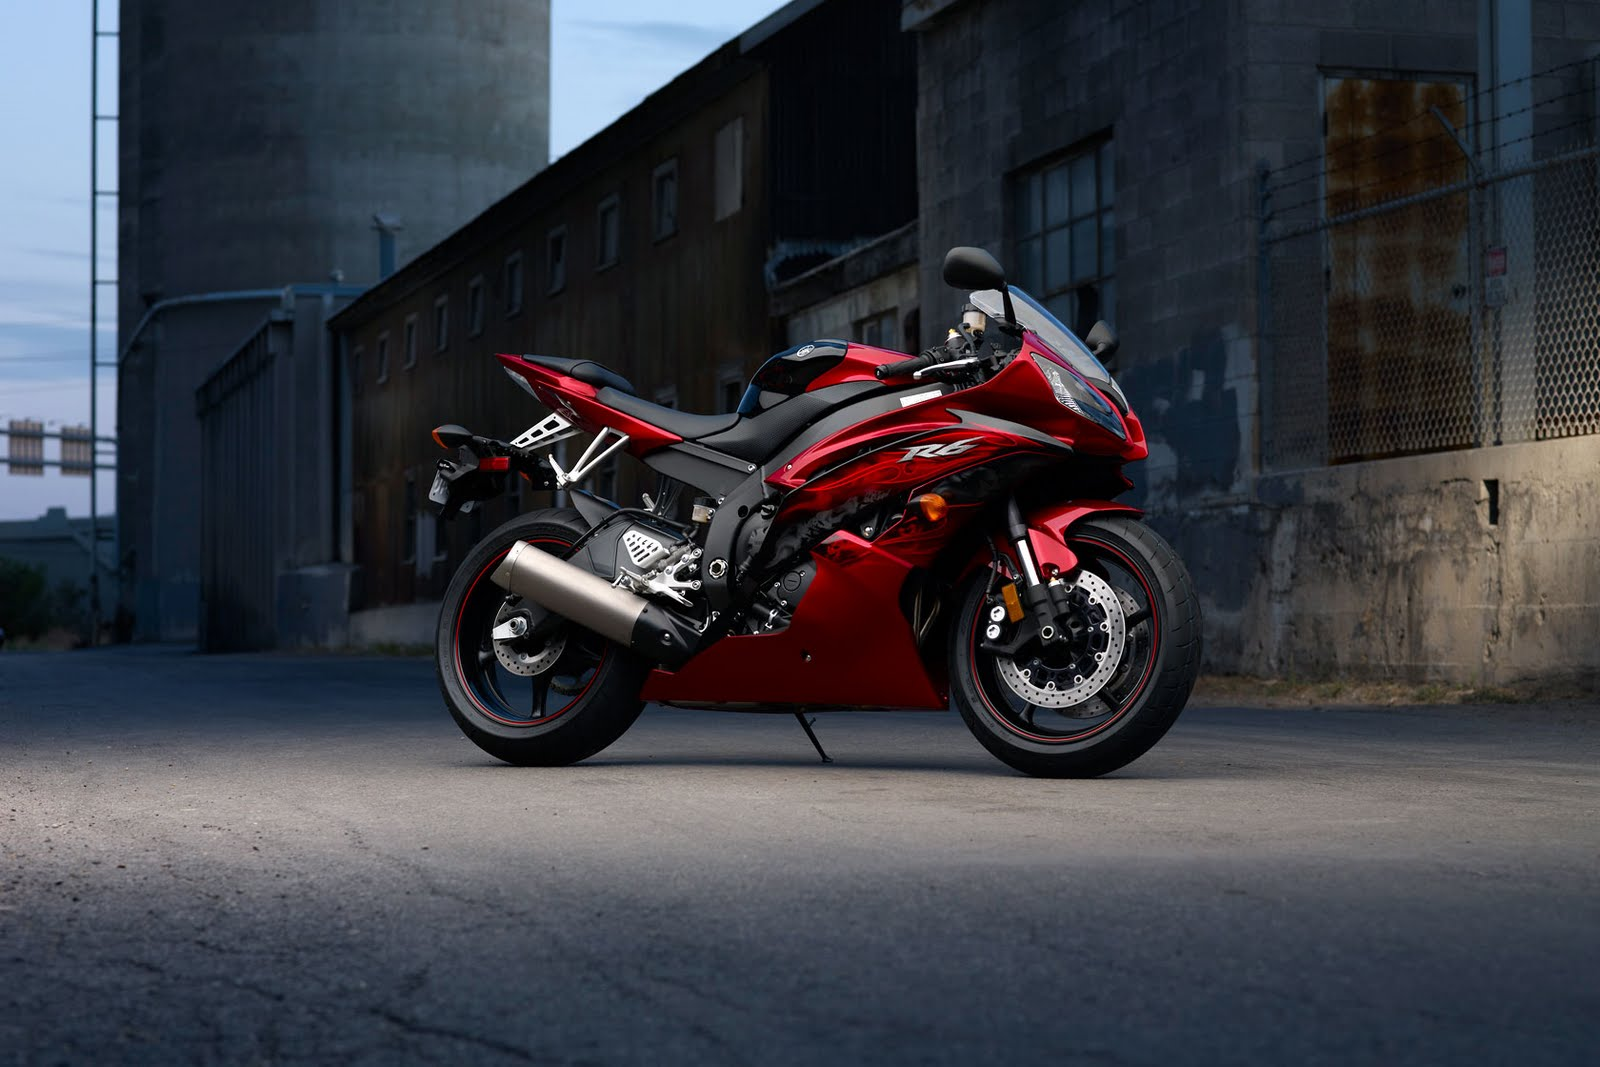 AUTOMOTIVE WALLPAPER Yamaha YZF R6 Wallpaper 1600x1067